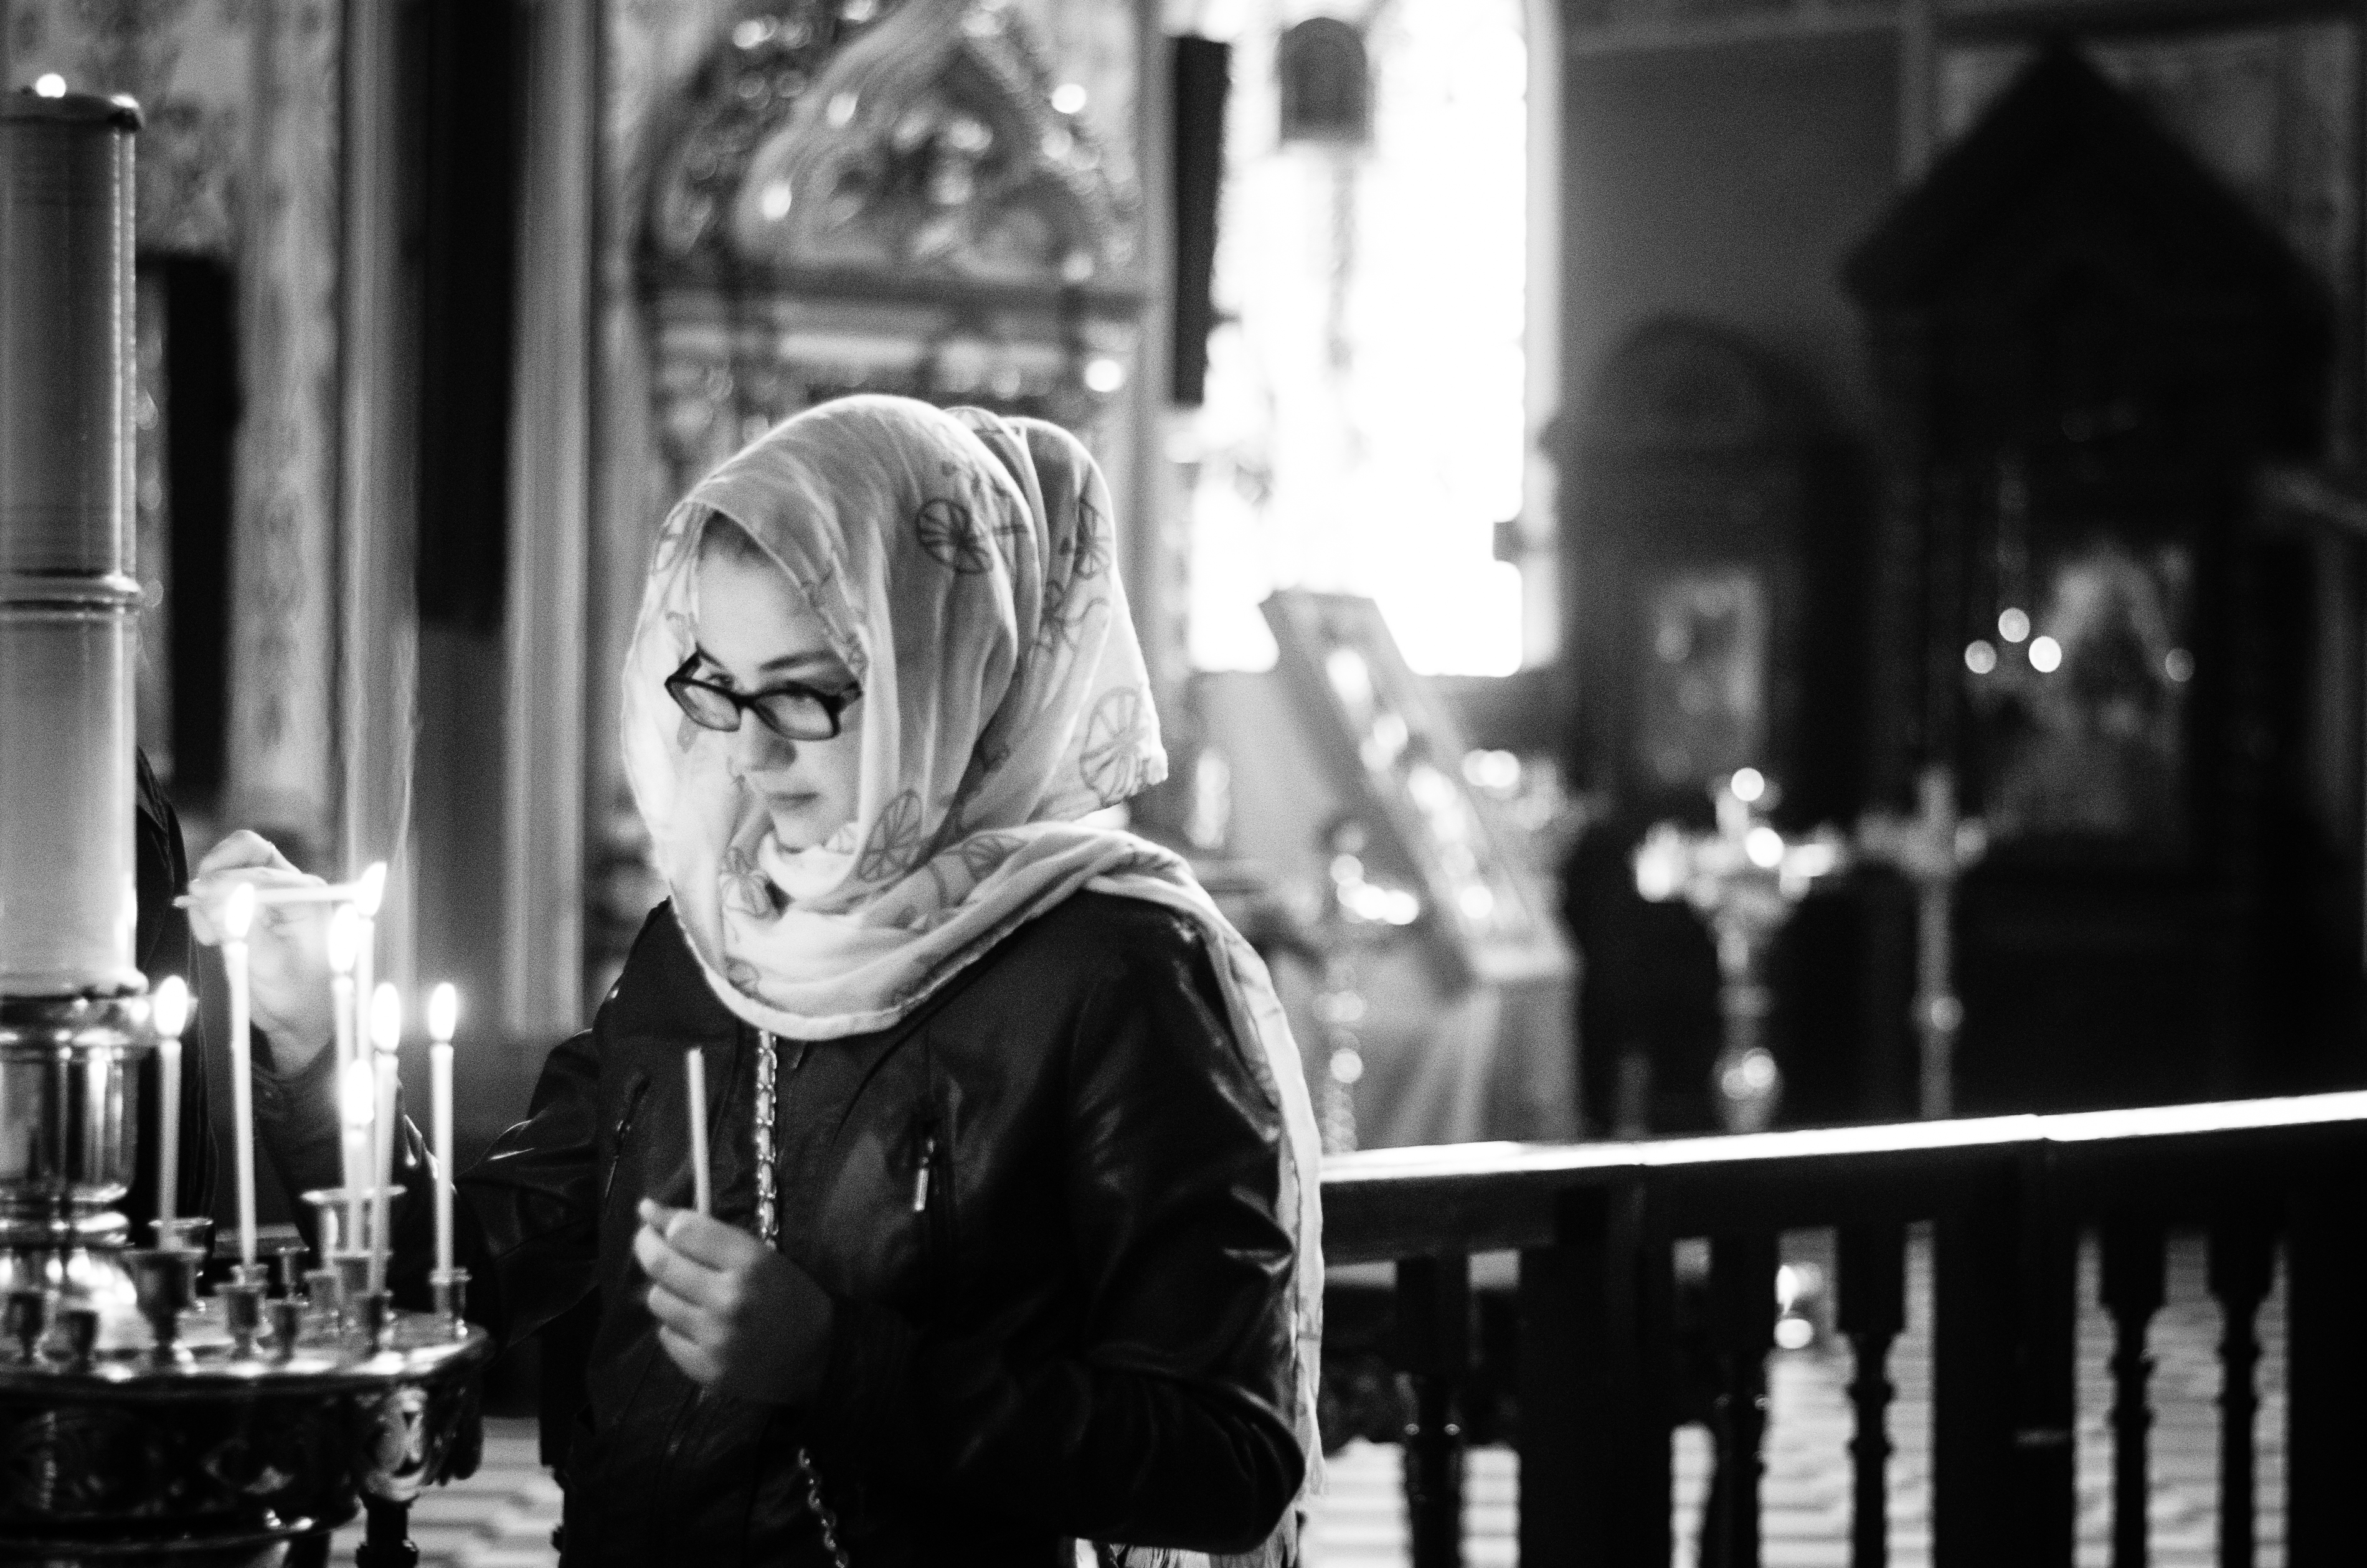 Orthodox woman lights candle in church in Estonia